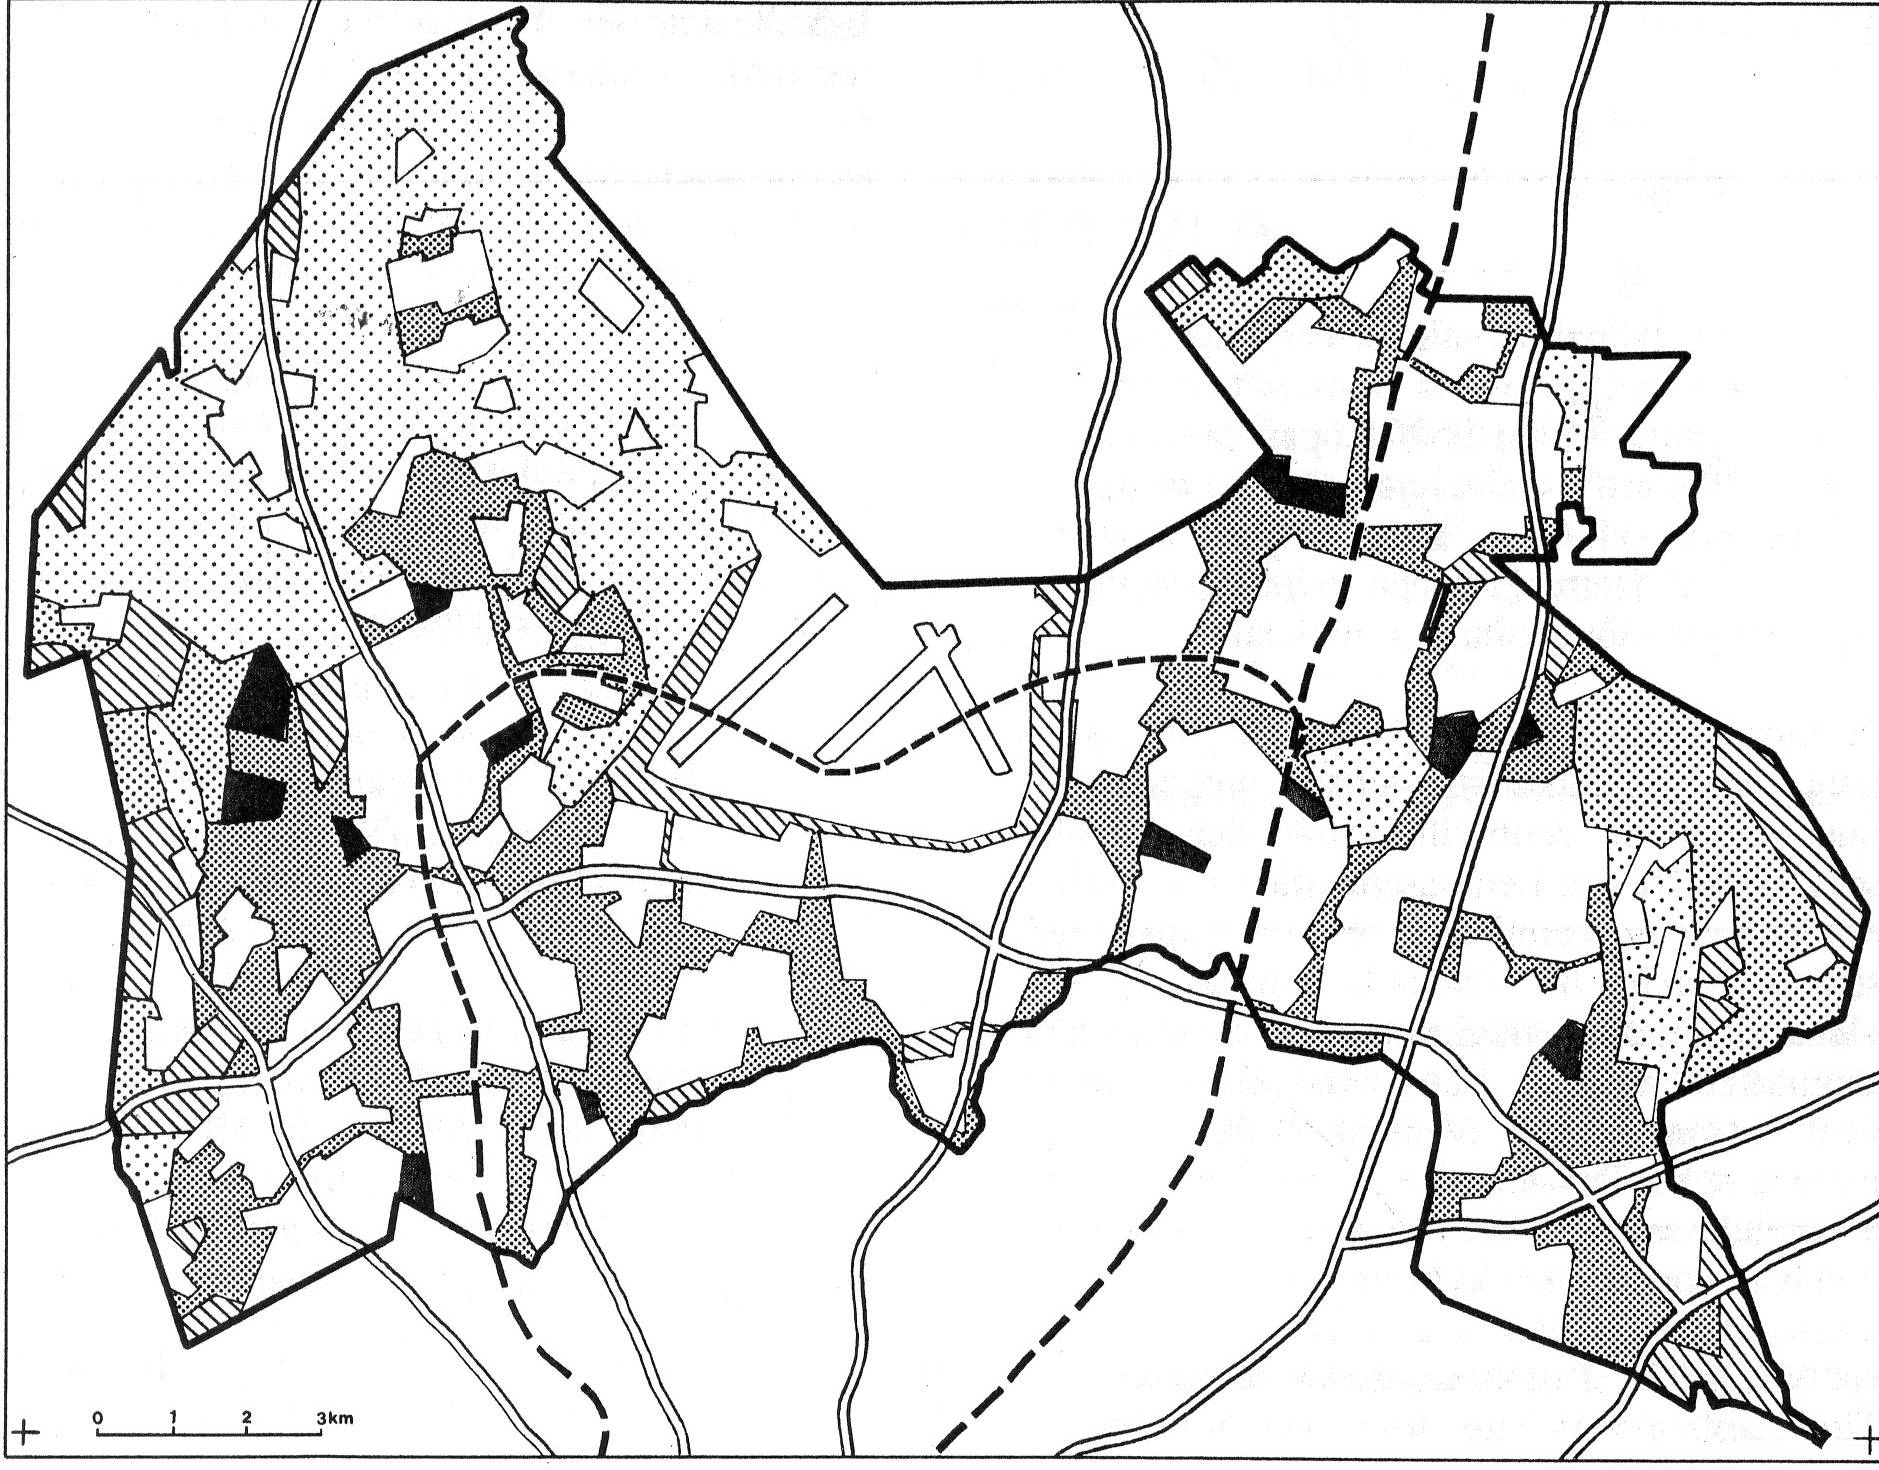 Figure. 1992 Master Plan of Vantaa showing variety of its green spaces.41 Re-Defining Green Spaces in the 2000s After the recession of the 1990s, both cities experienced a population growth.